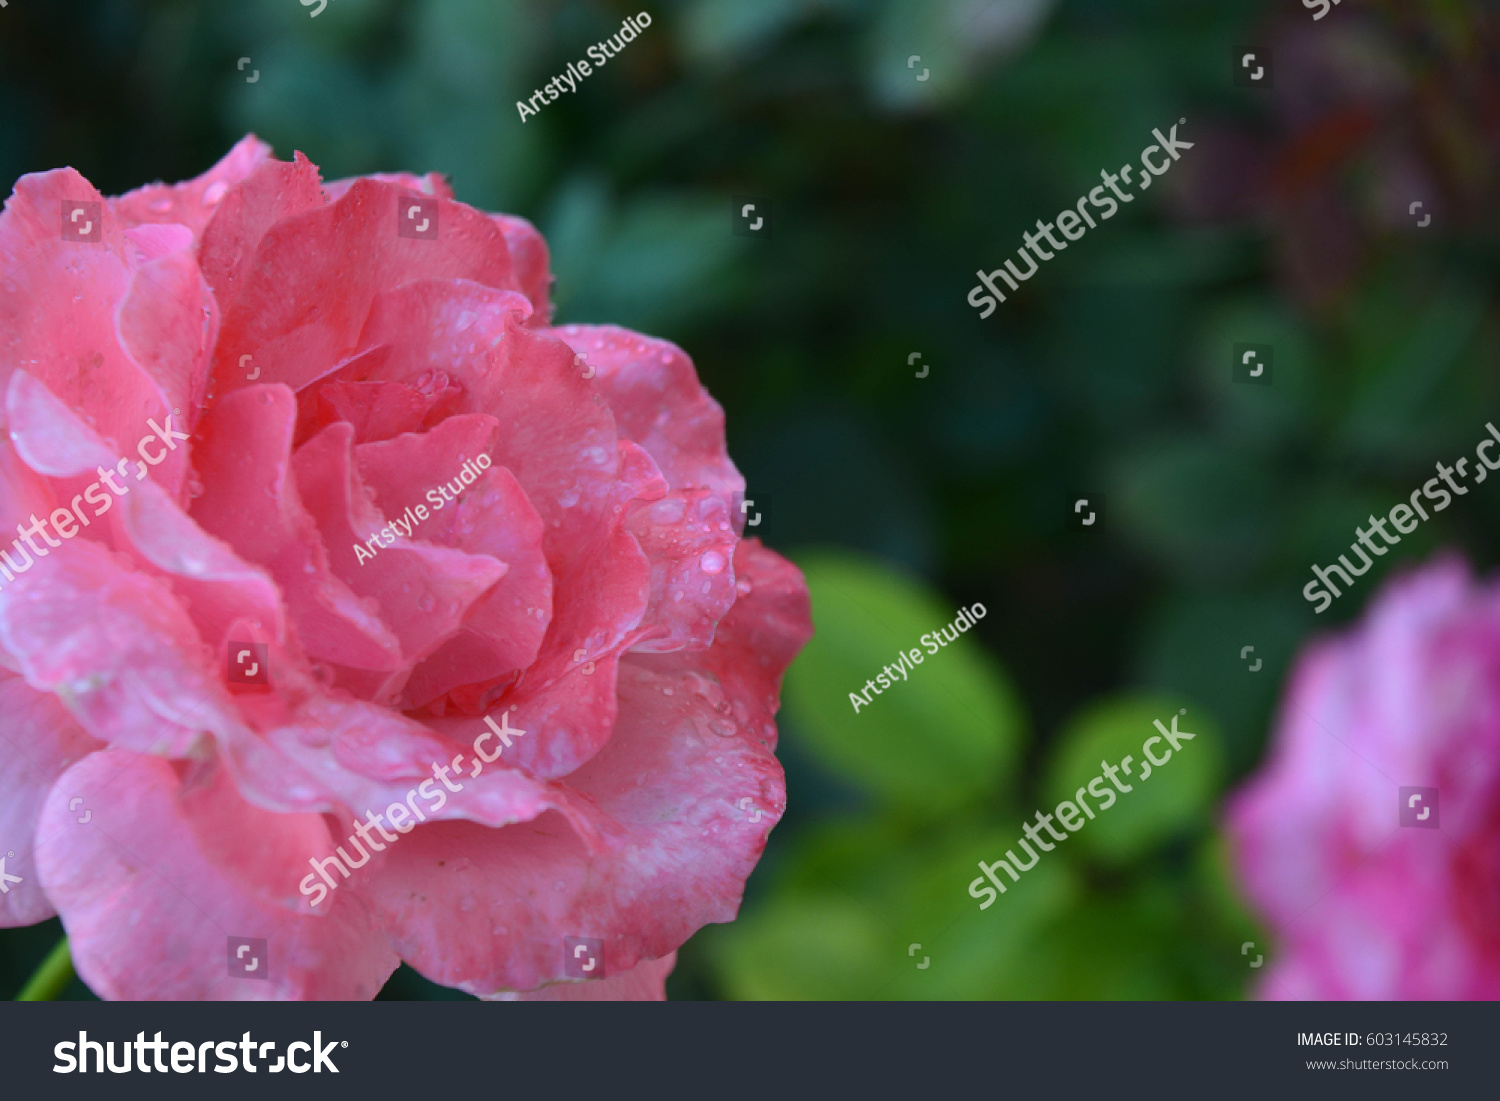 A beautiful rose ez canvas id 603145832 izmirmasajfo